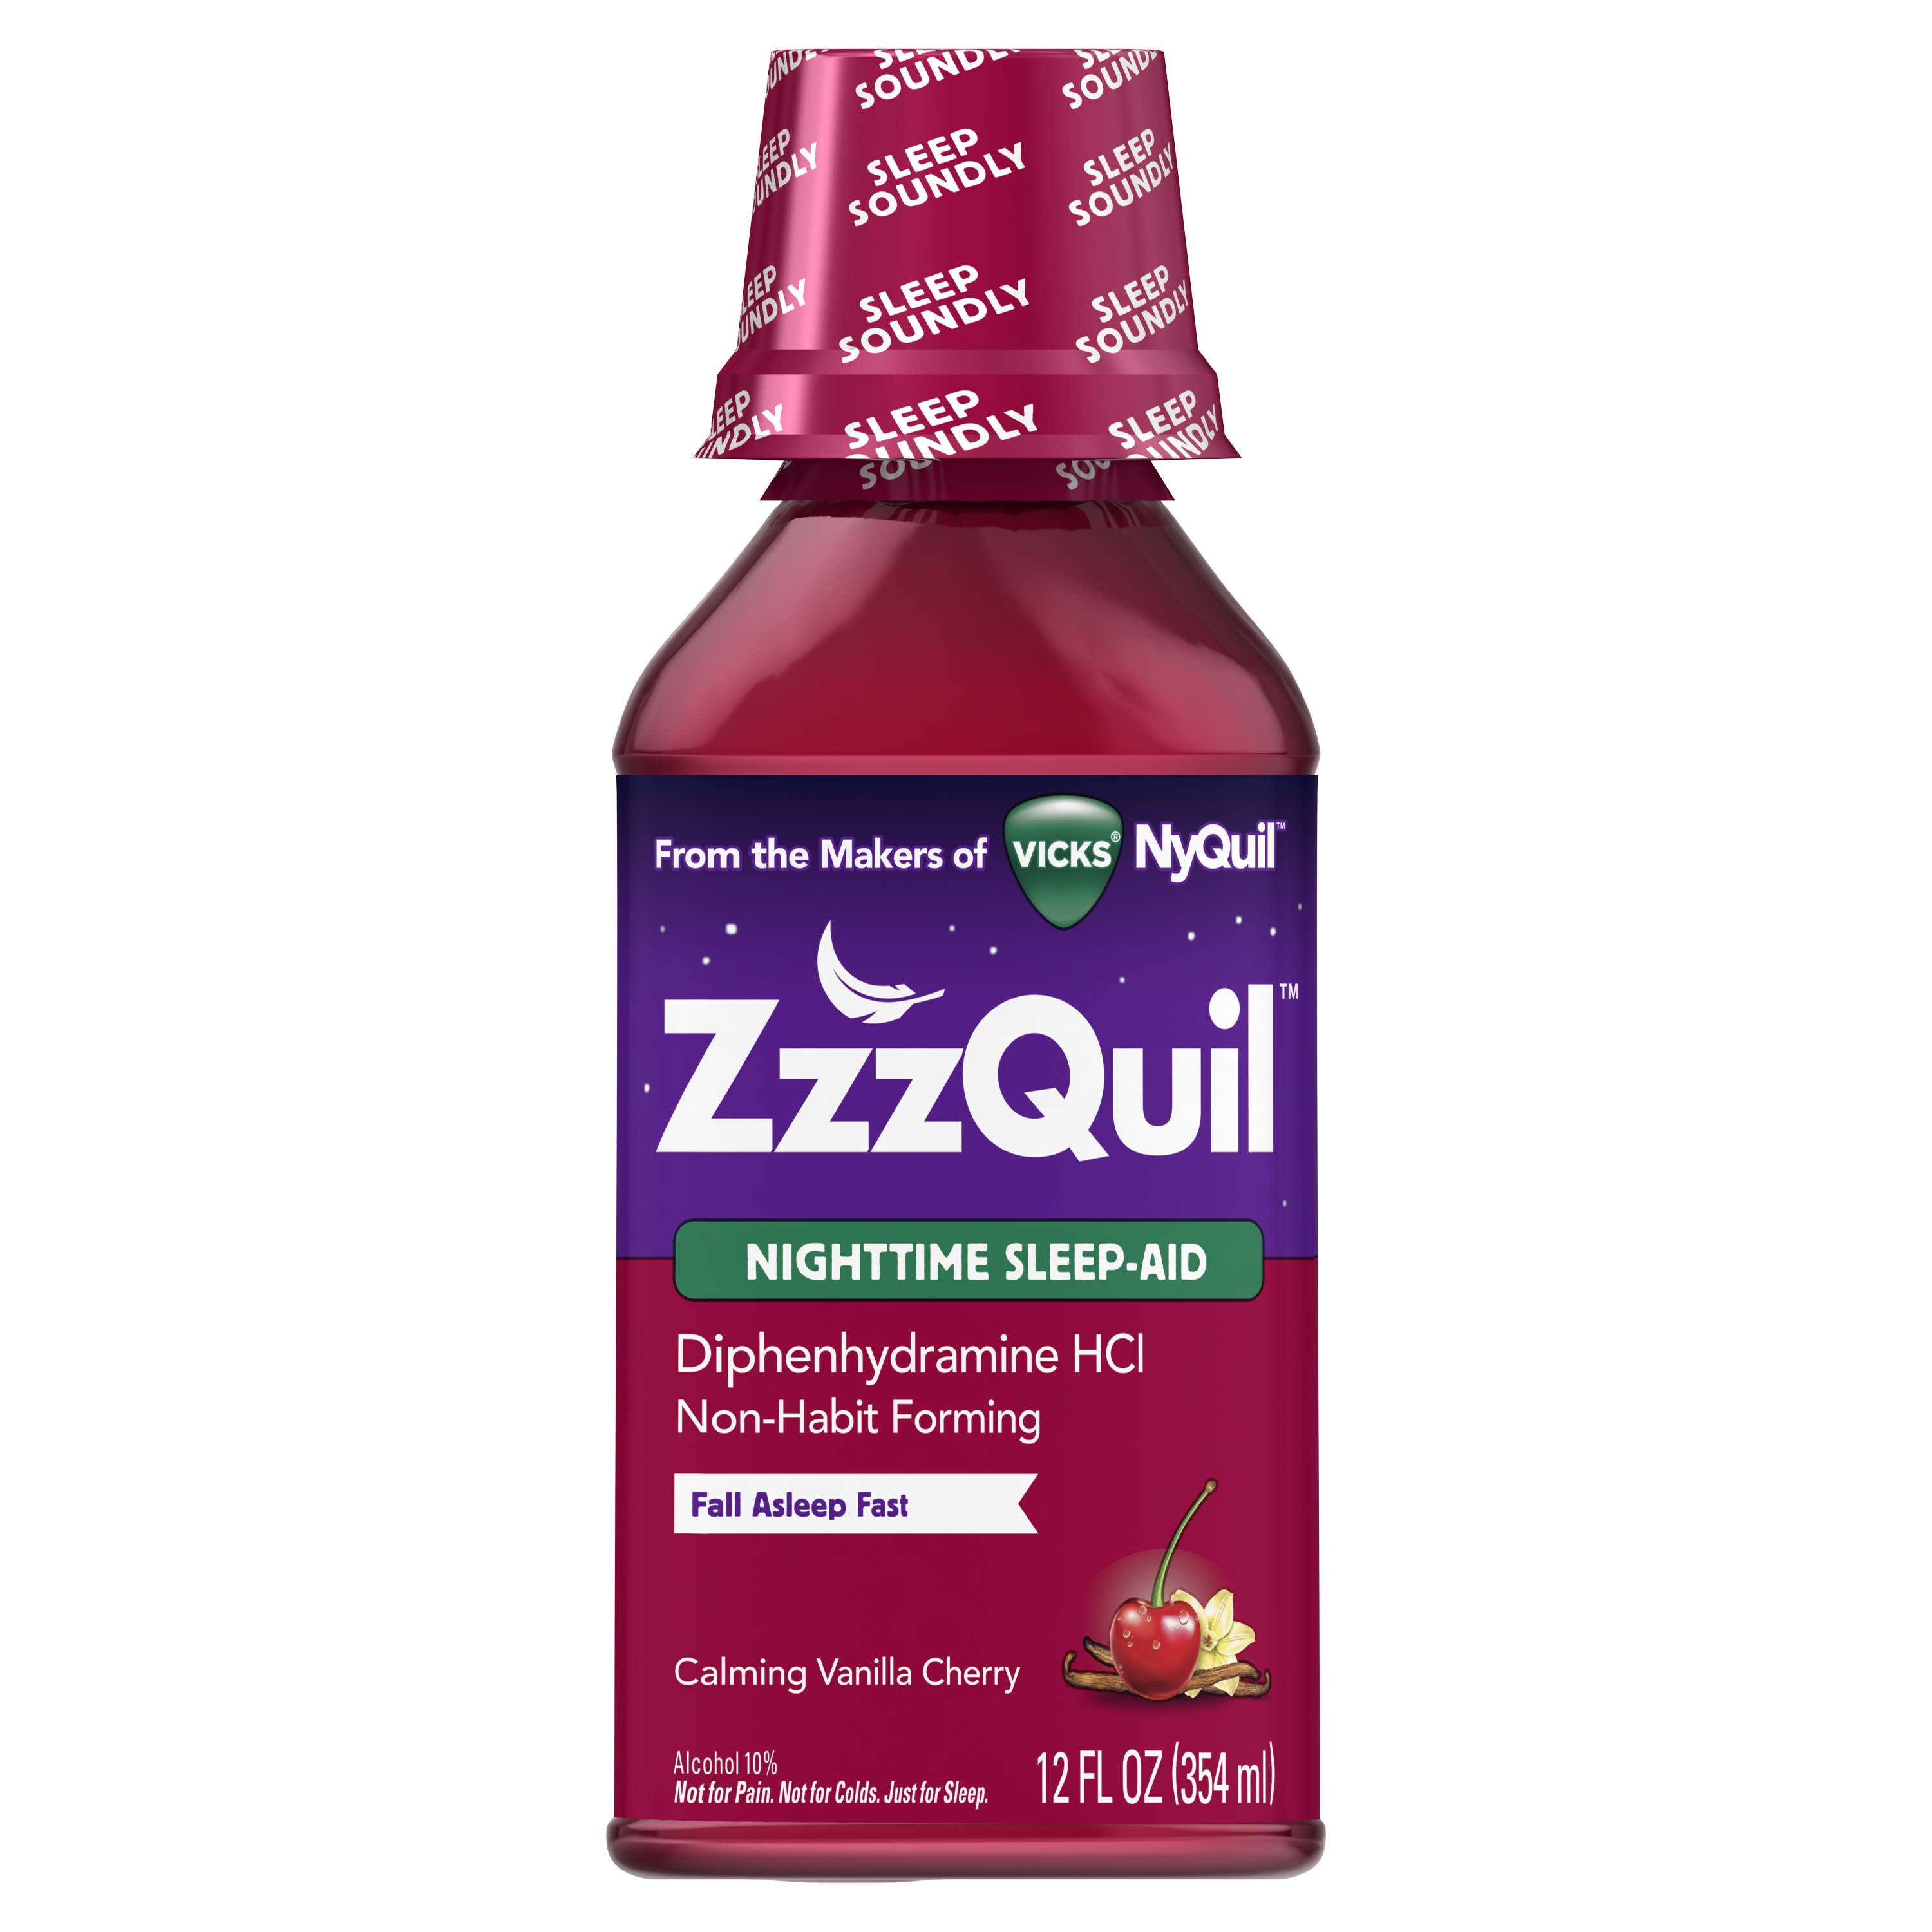 Vicks ZzzQuil Nighttime Sleep Aid, Calming Vanilla Cherry Liquid, 12 fl oz.